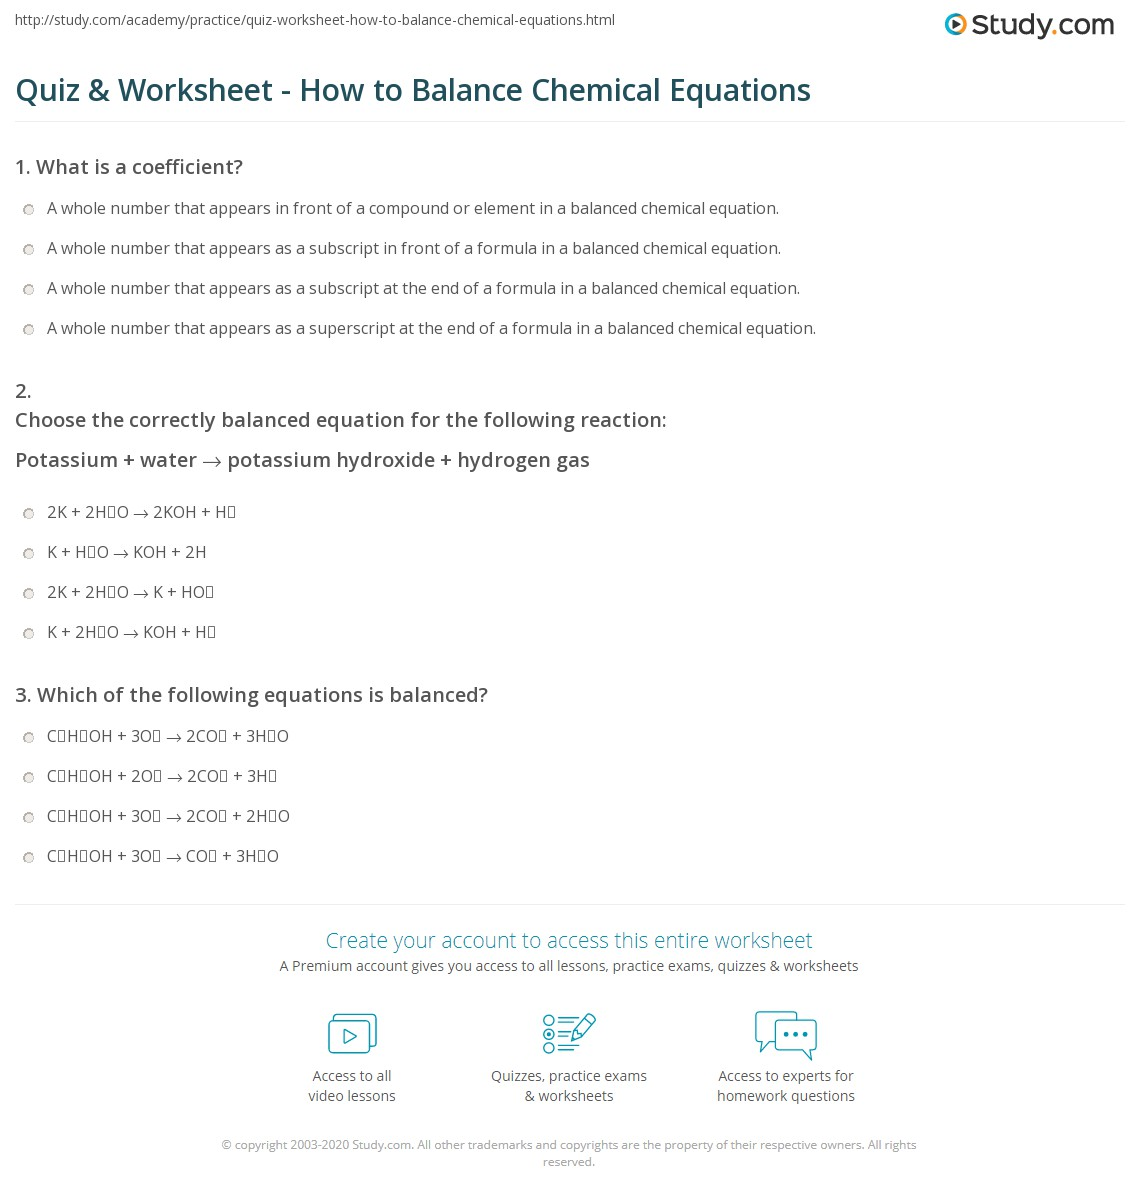 print chemical reactions and balancing chemical equations worksheet - Balancing Equations Worksheet Answers